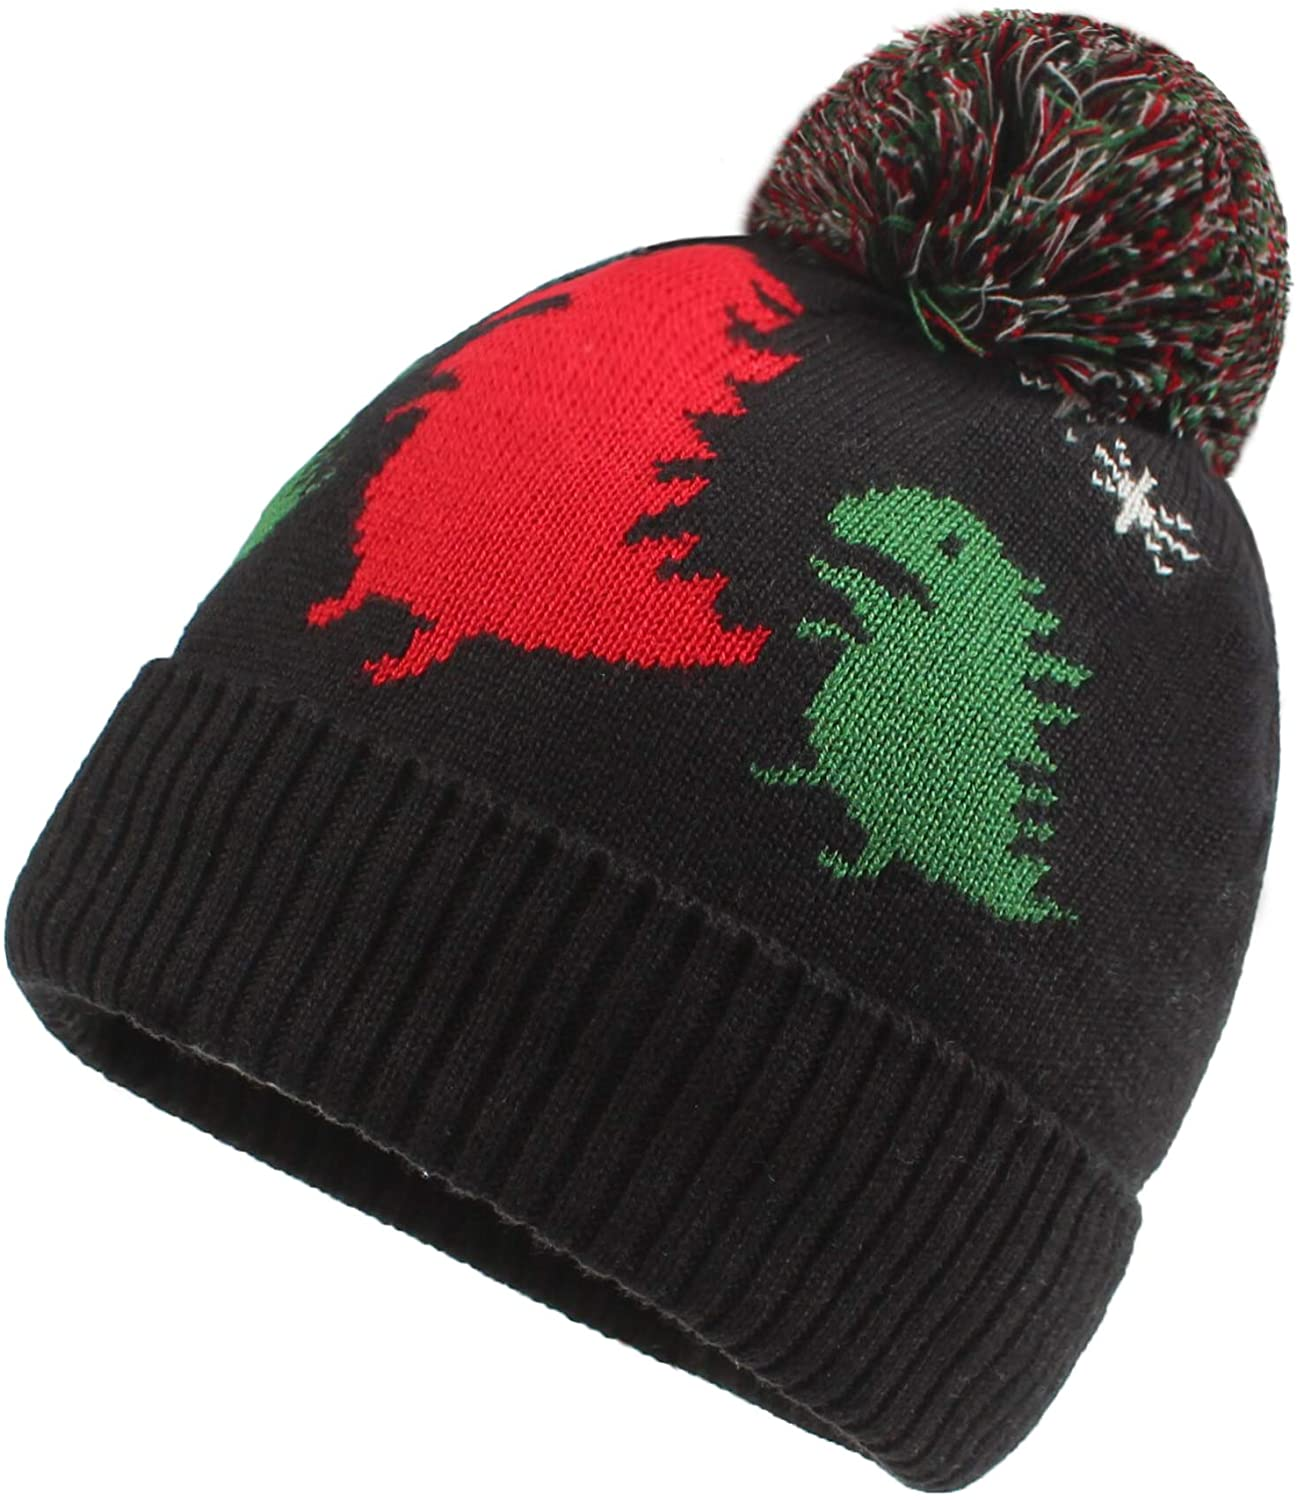 FUOITA Kids Baby Dinosaur Beanies Toddler Winter-Hat Pom-pom Caps Gift for Girls Boys